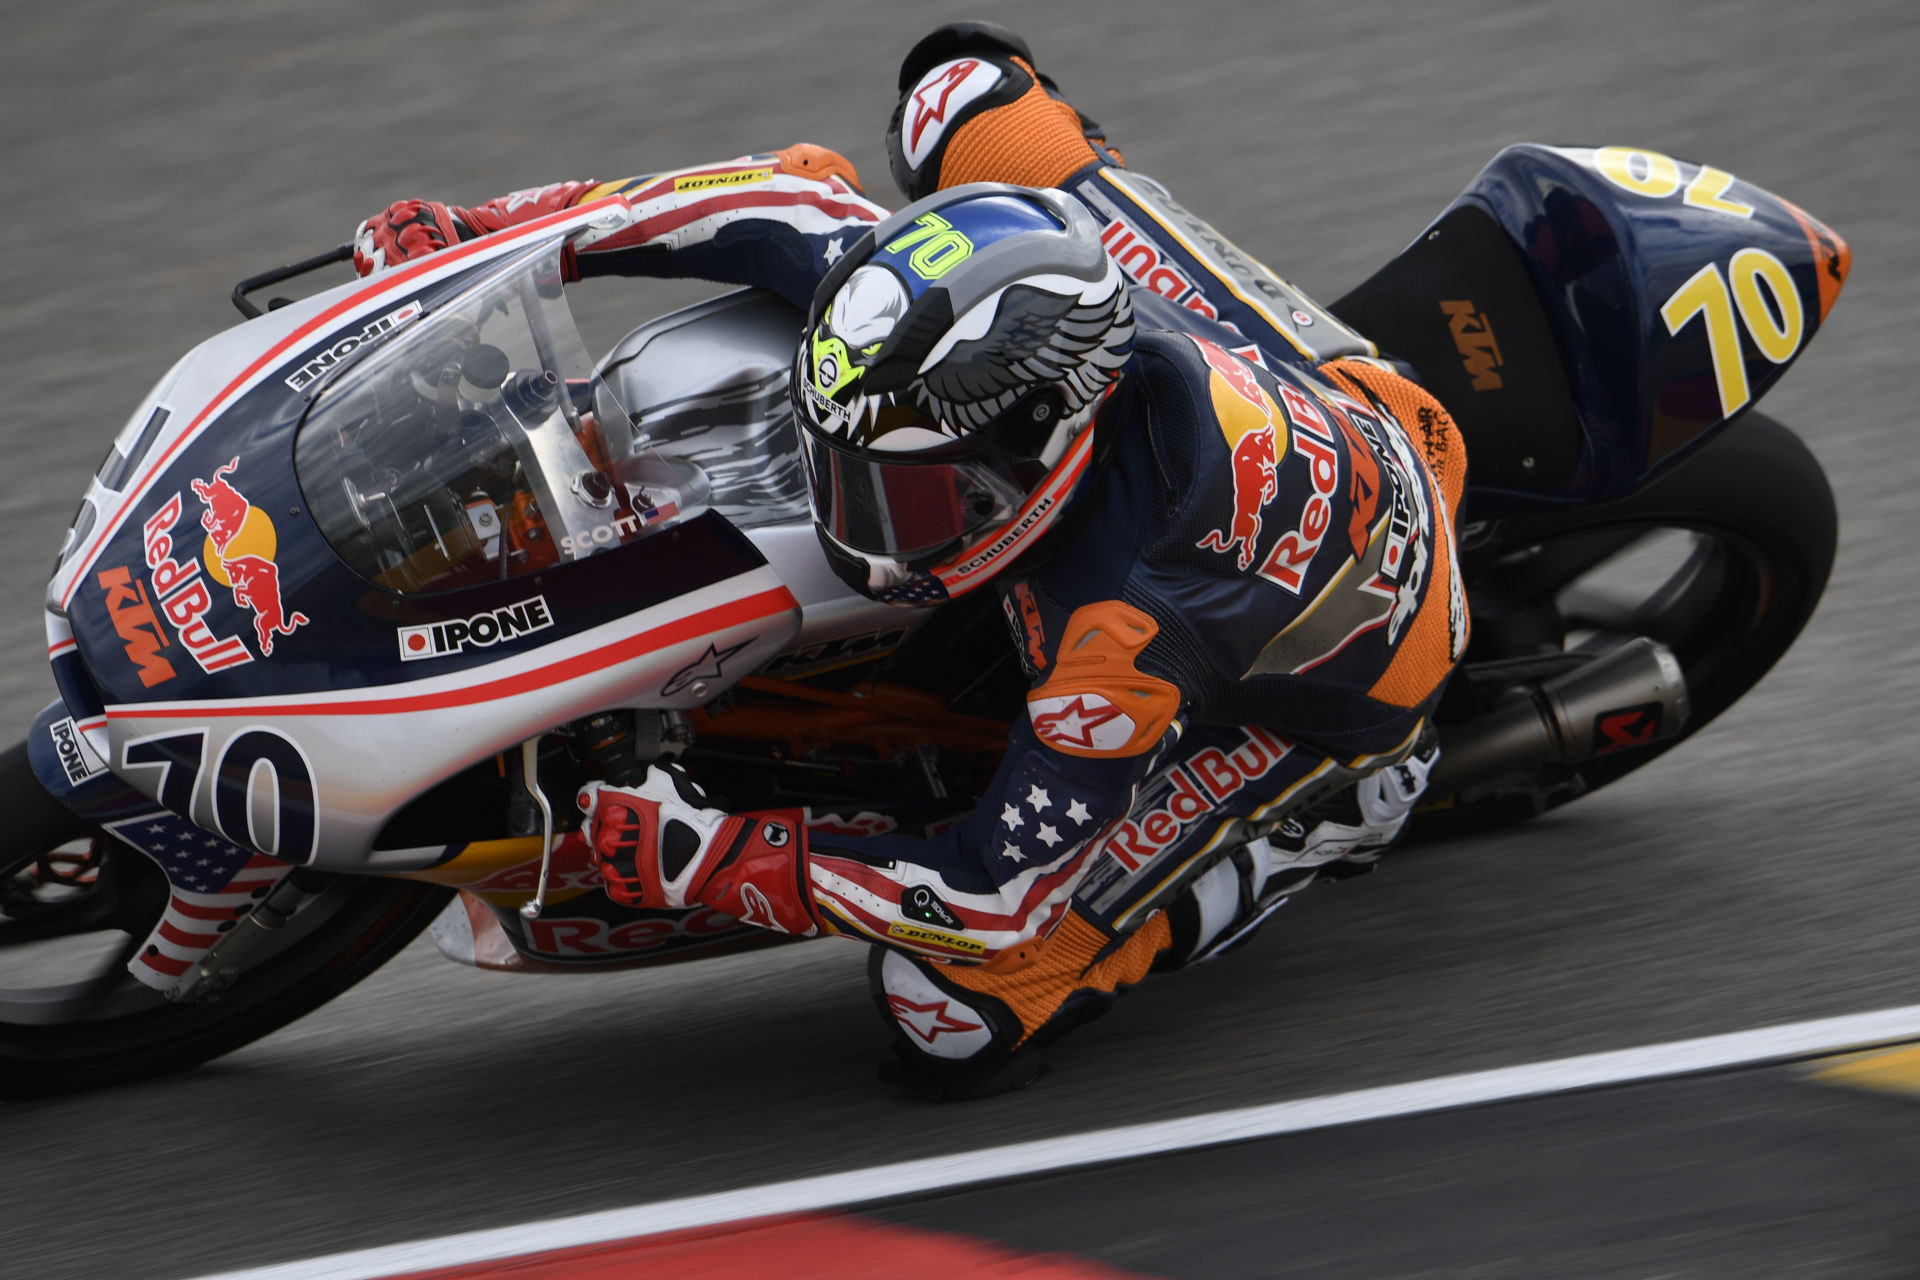 Tyler Scott (70) at speed during the 2019 Red Bull MotoGP Rookies Cup. Photo by GEPA Pictures, courtesy of Red Bull.